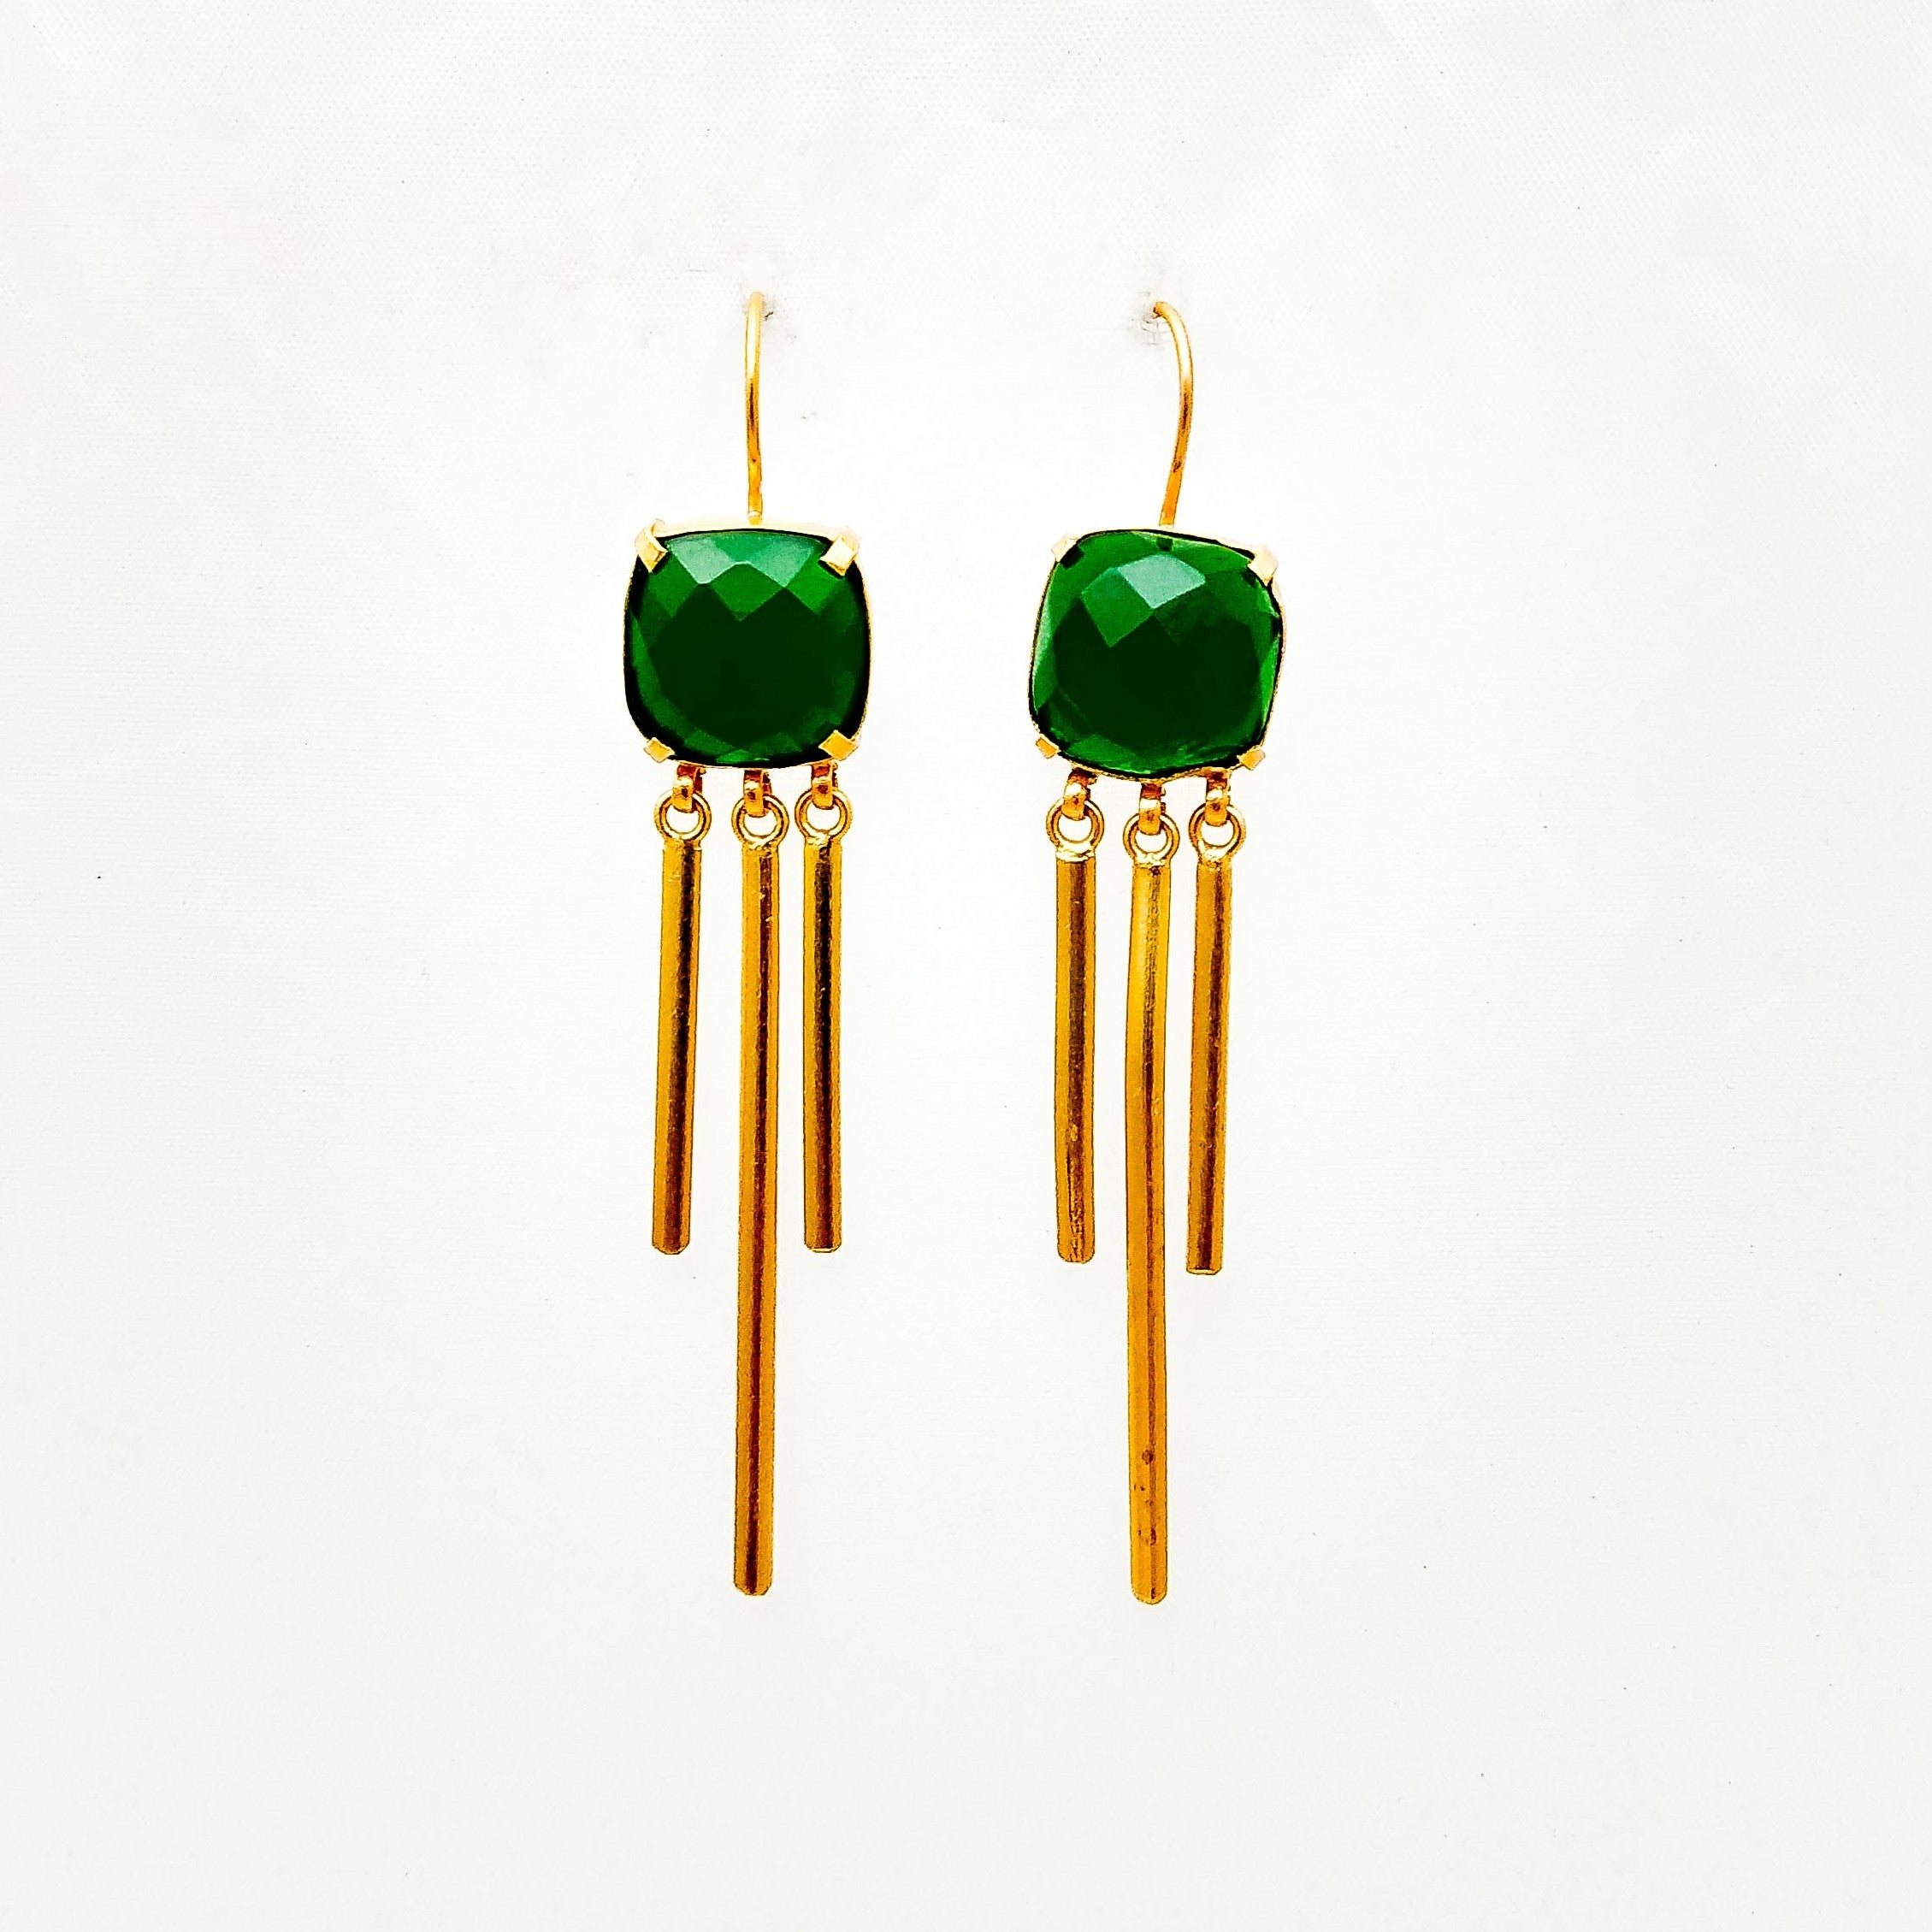 Gold Plated Square Drop Earring in Green Quartz